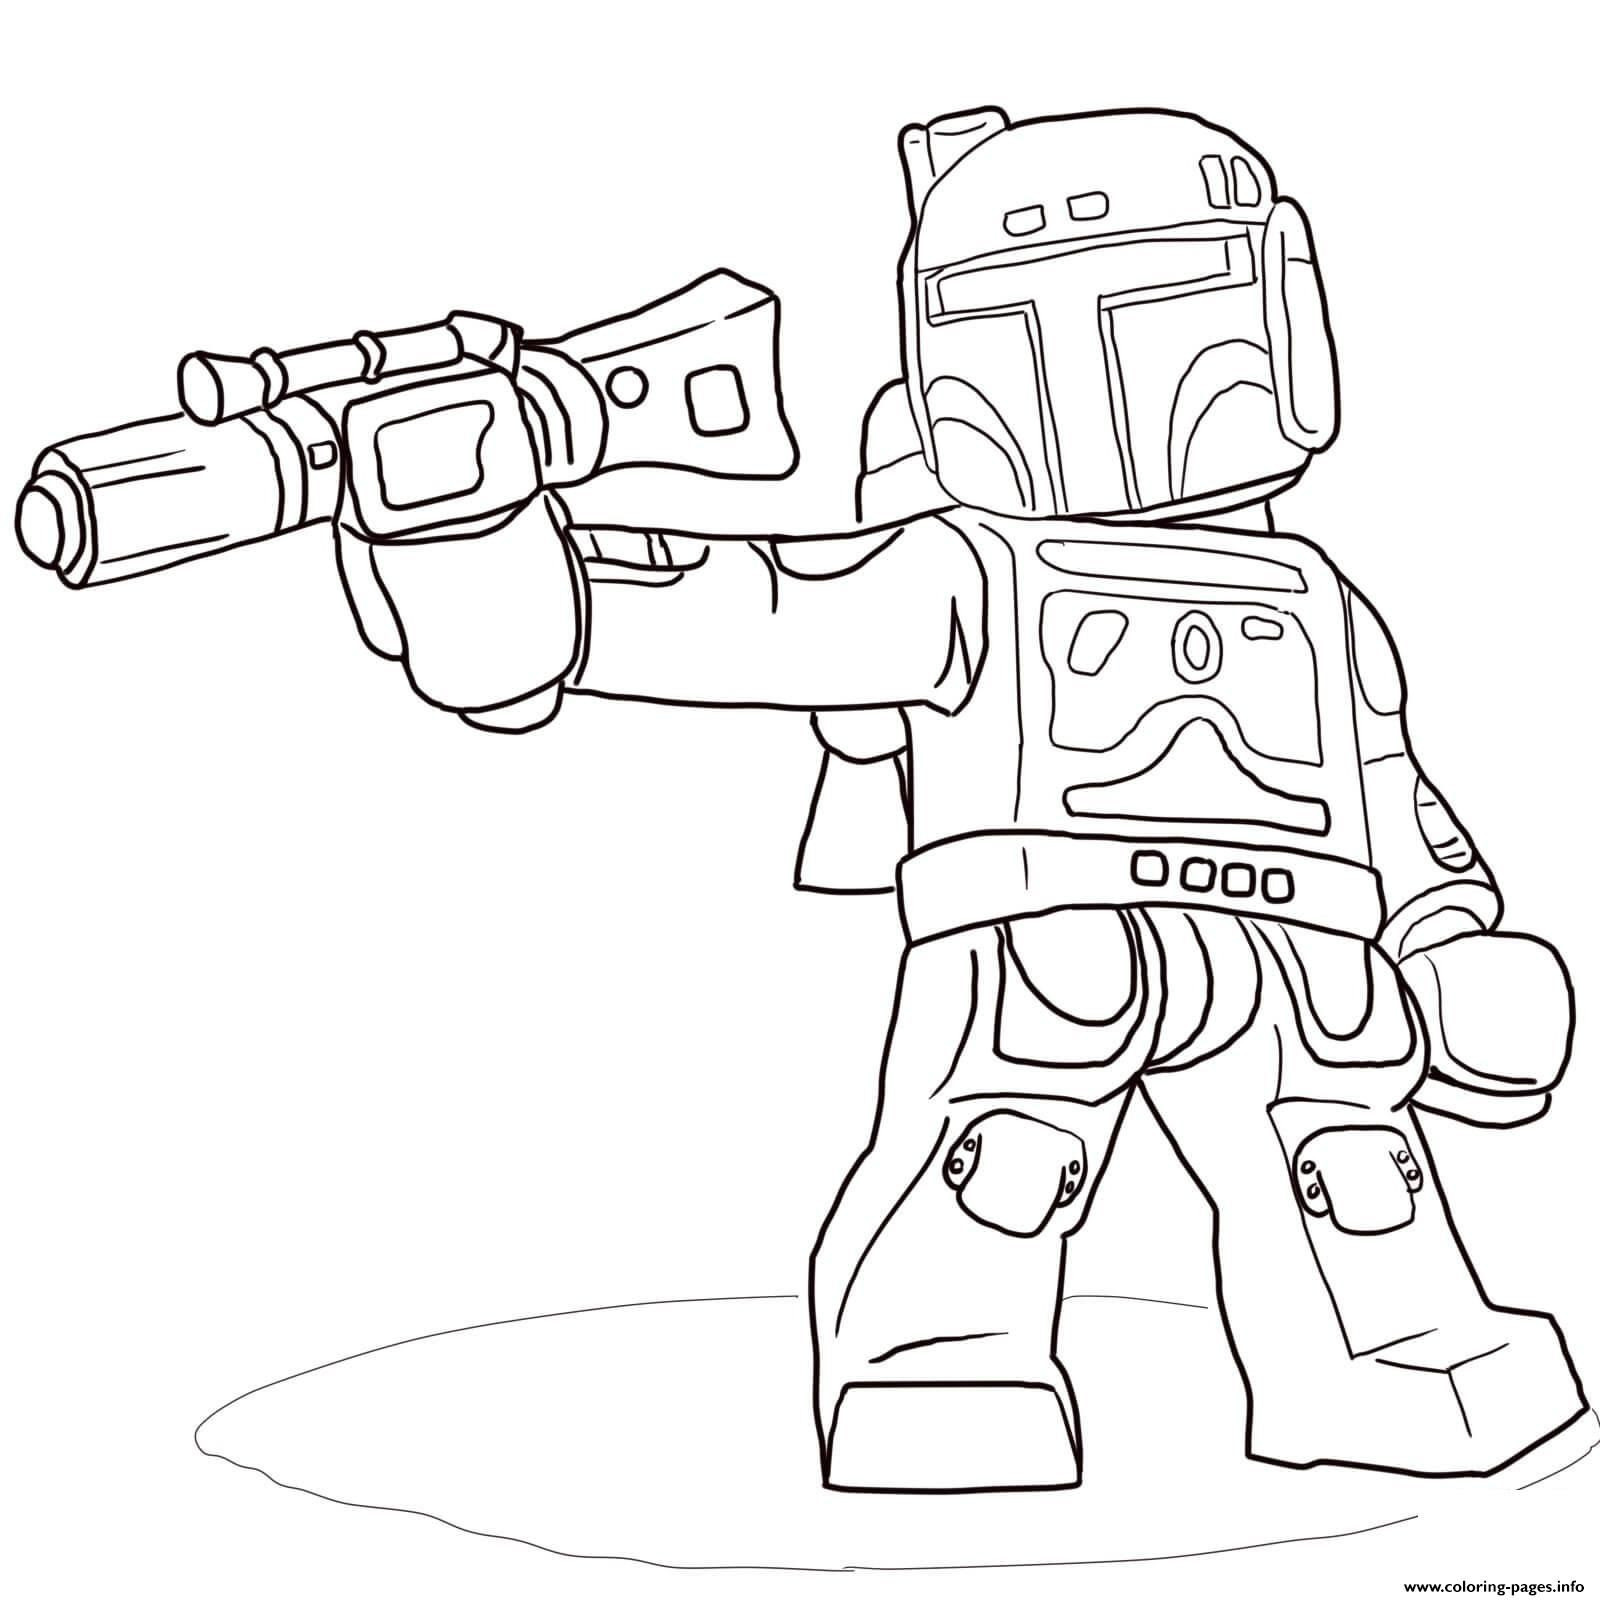 Boba Fett Ausmalbilder Genial Petitive Star Wars Kylo Ren Coloring Pages Unknown Einzigartig Fotografieren